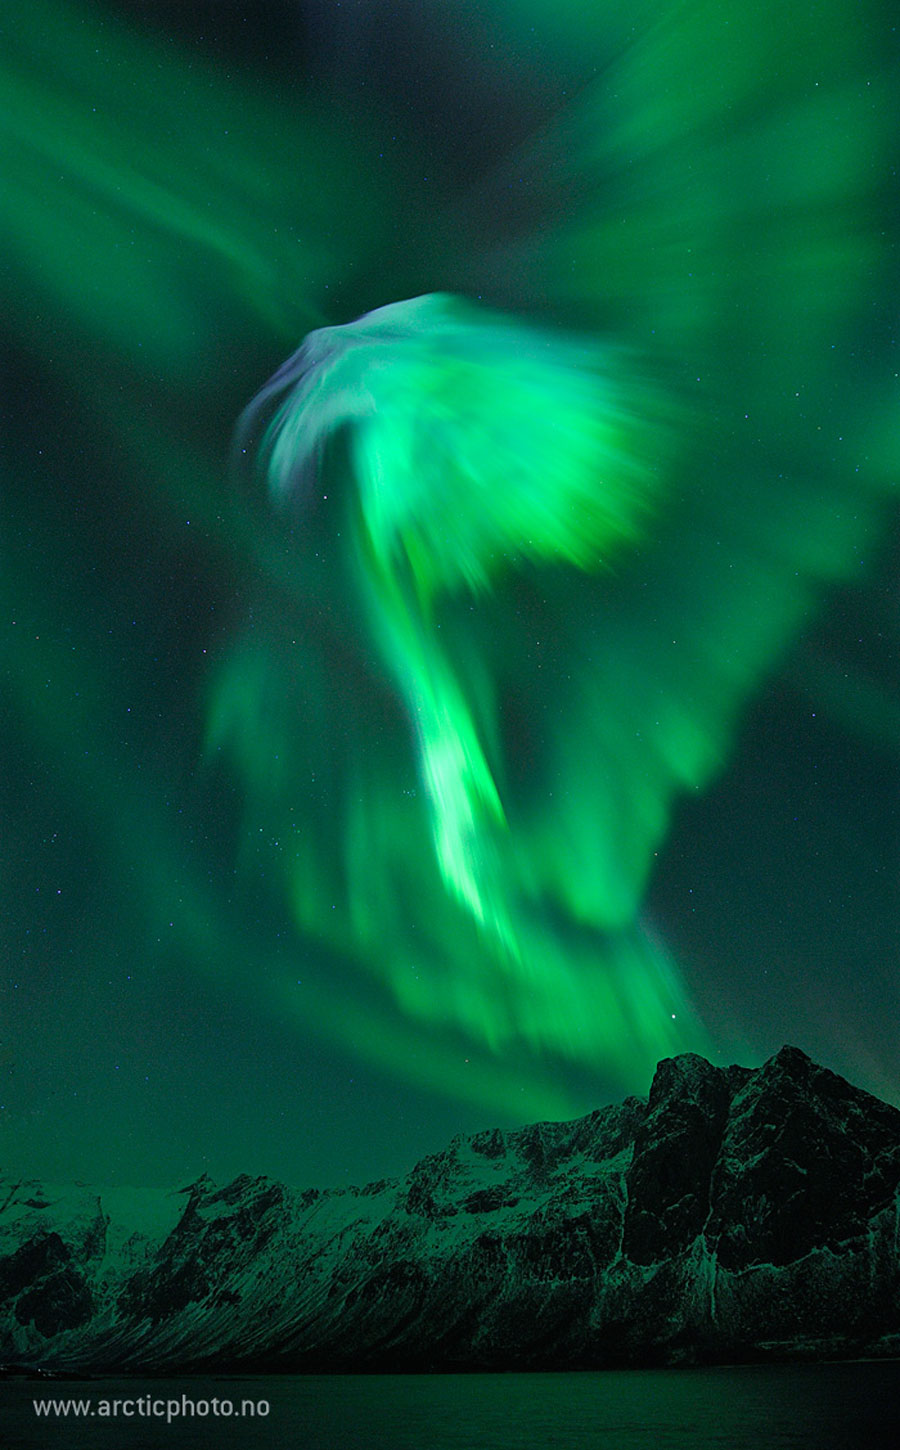 APOD: 2012 January 24 - January Aurora Over Norway